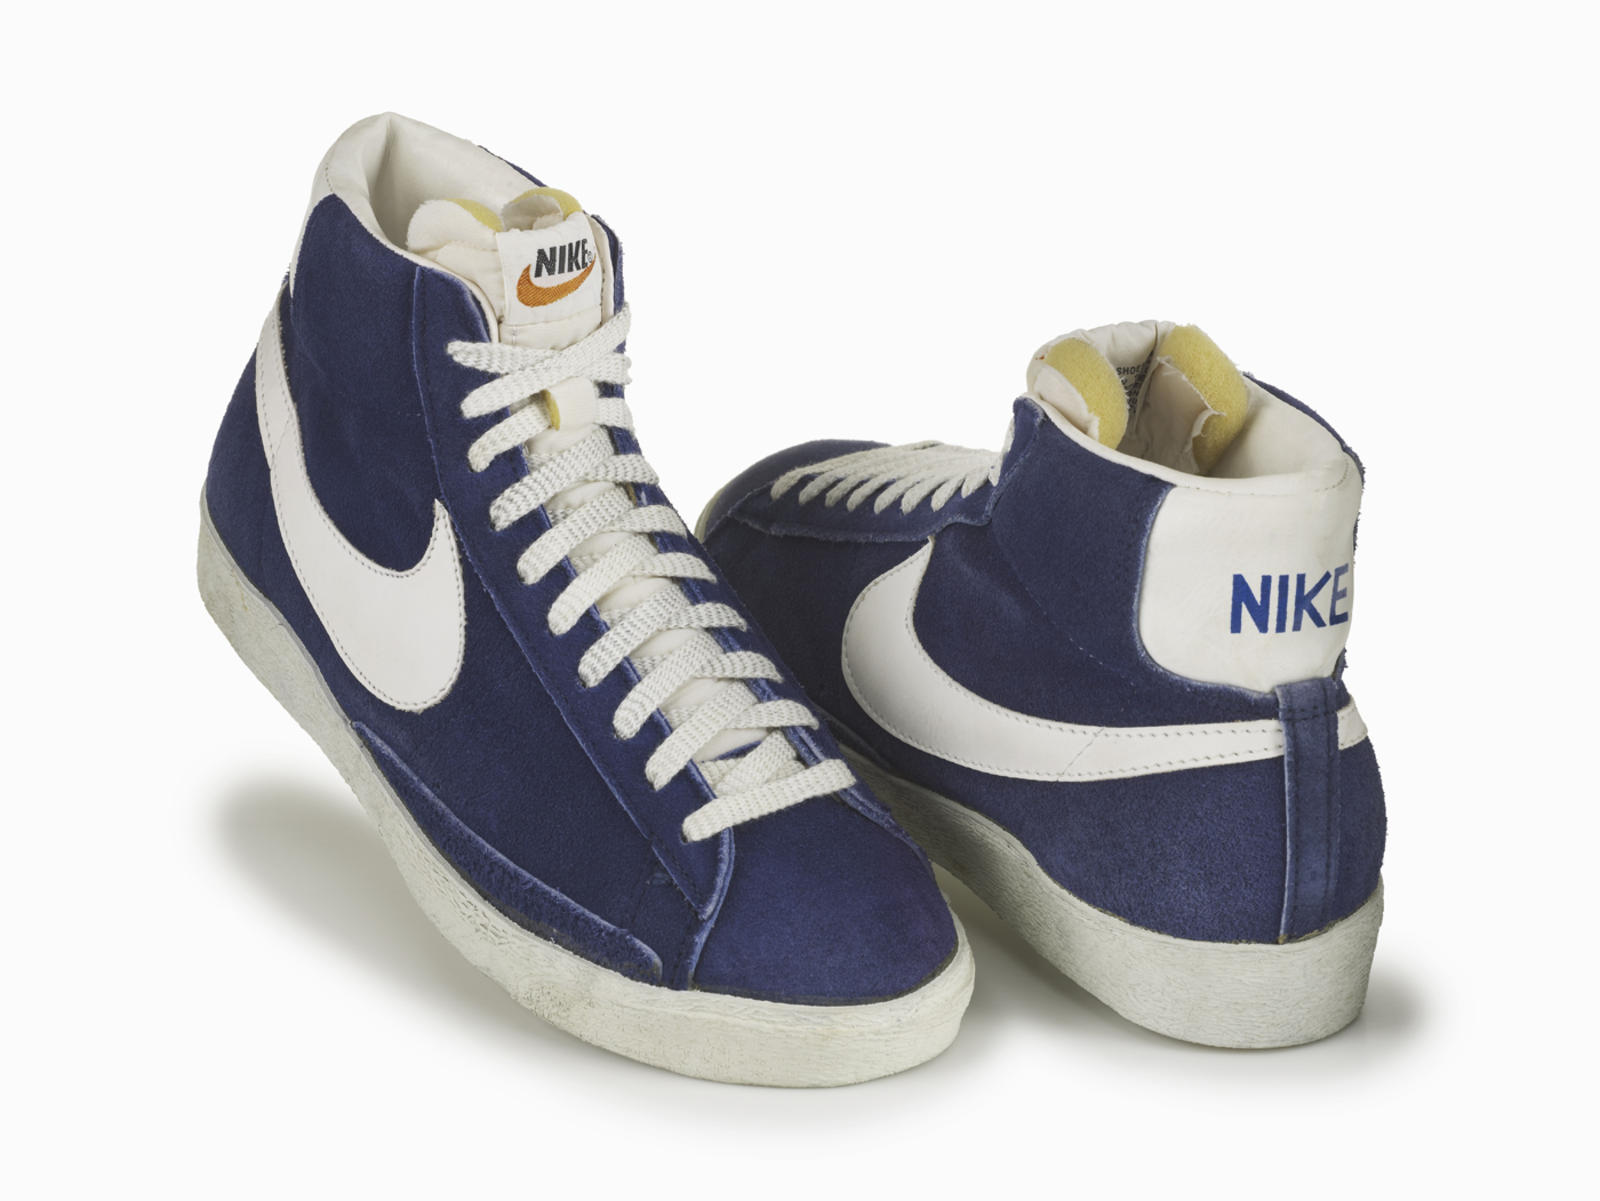 1972: Nike's Birth in NYC. Nike Blazer (1972), the brand's first basketball  shoe